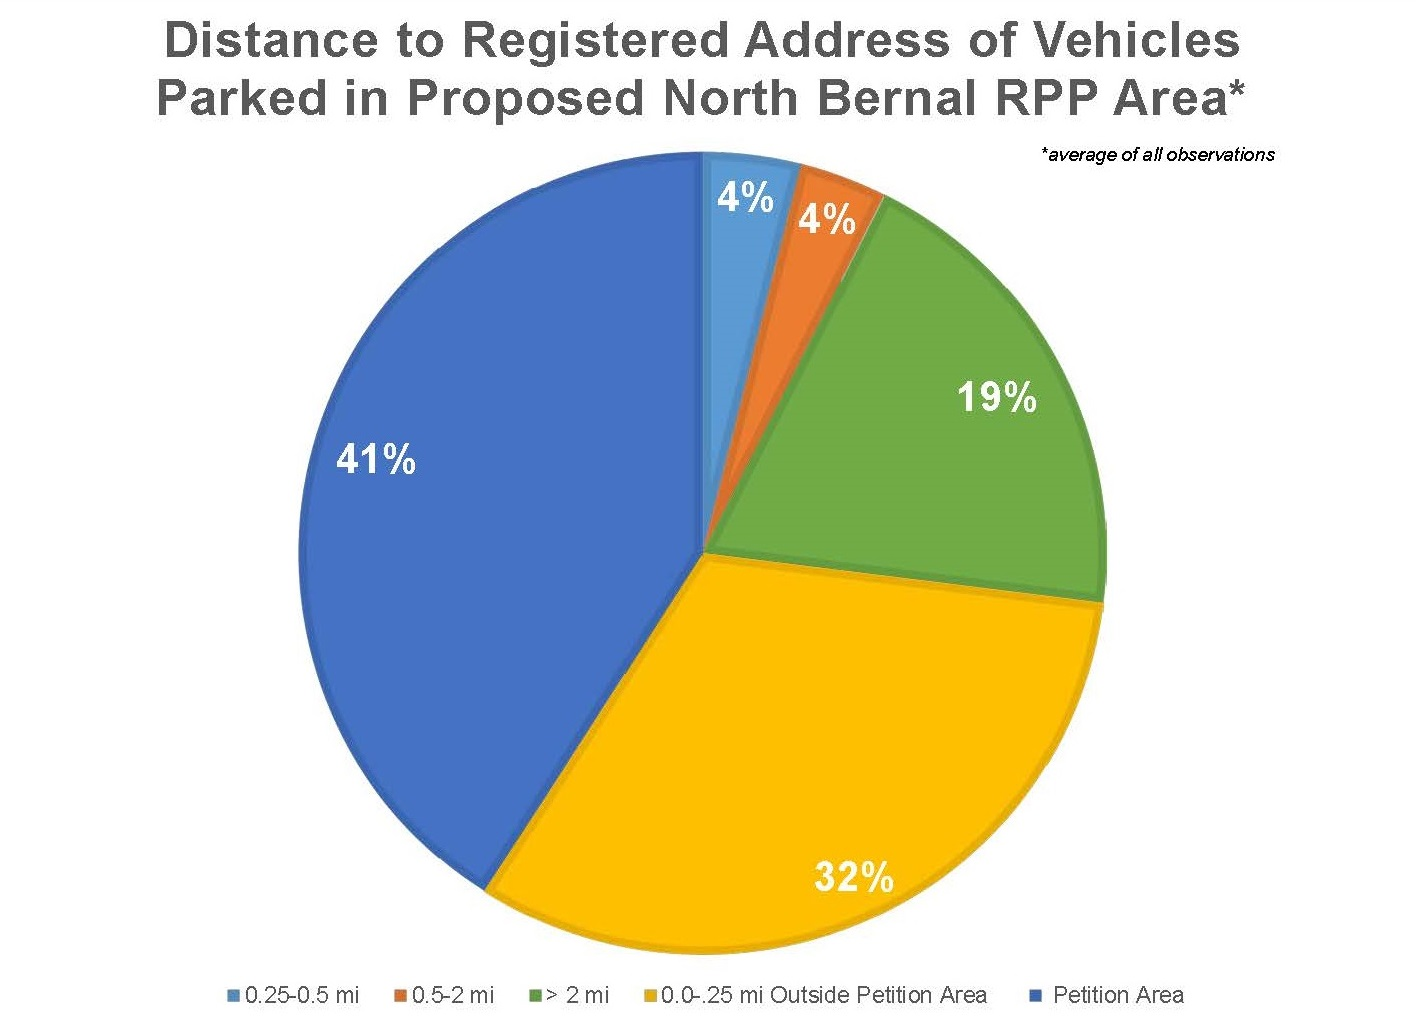 Distance to Registered Address of Vehicles Parked in Proposed North Bernal RPP Pilot Area